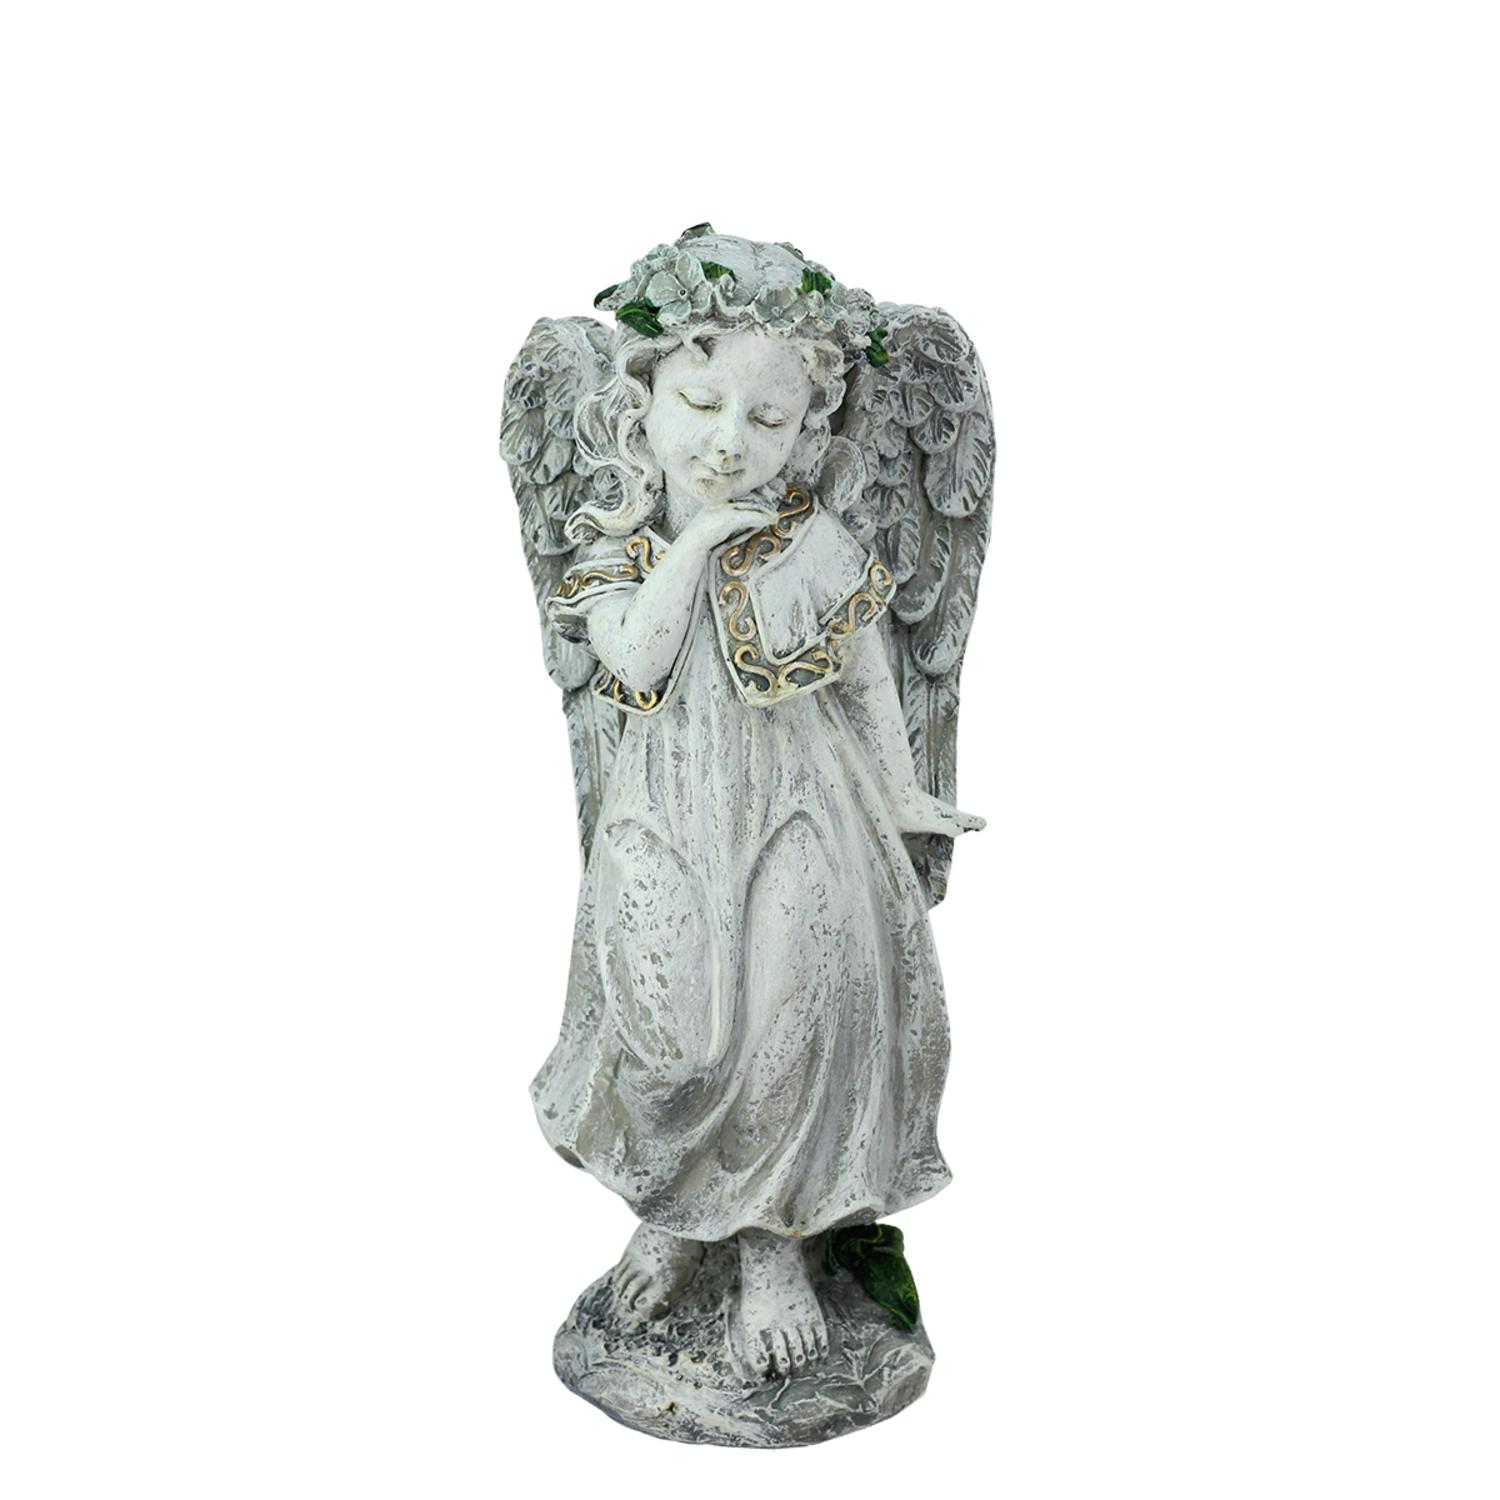 ''10.25'''' Heavenly Gardens Distressed Gray Angel Girl with Floral Crown Outdoor Patio Garden Statue''